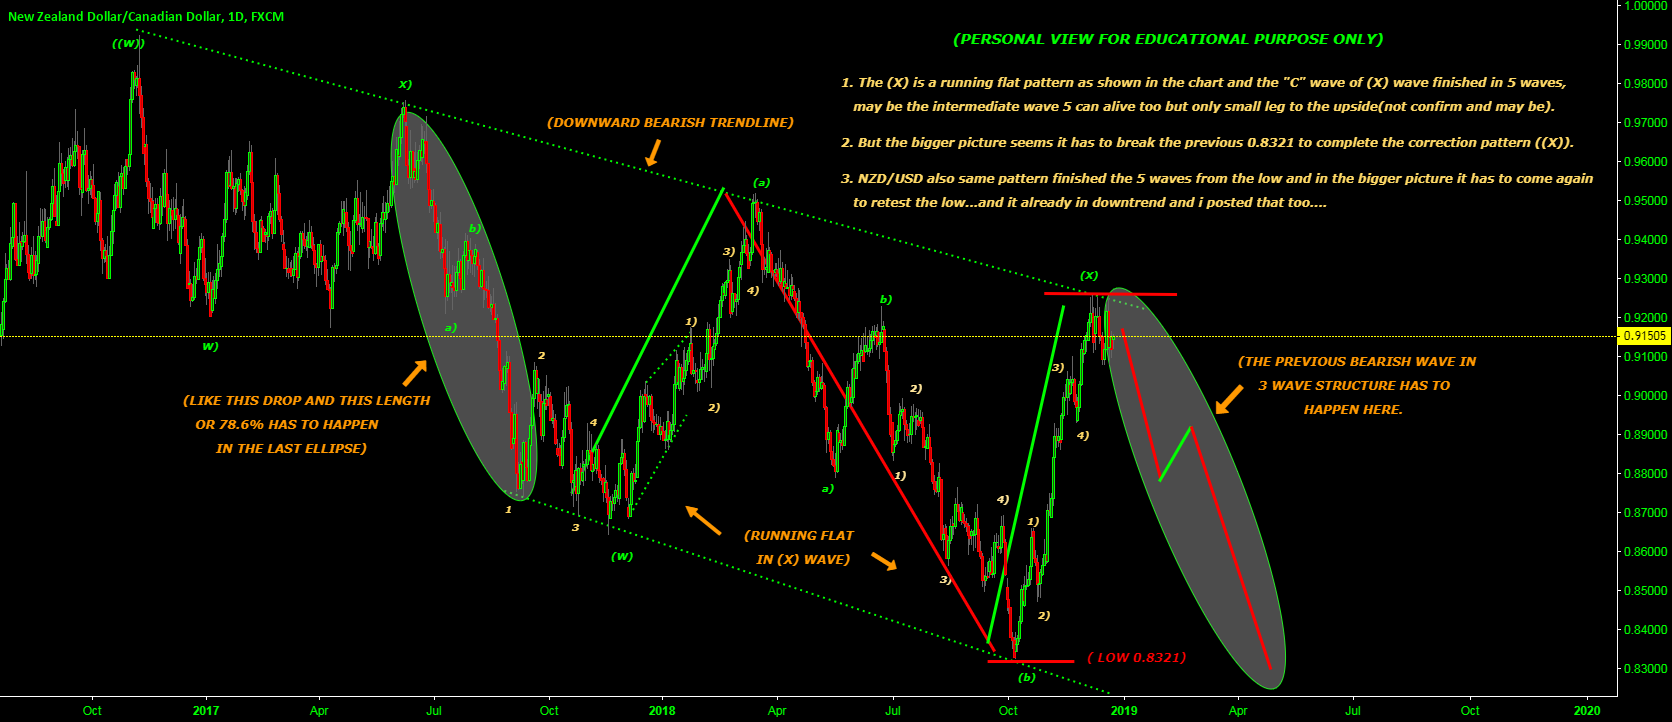 3 WAVE STRUCTURE DROP AHEAD TO BREAK THE PREVIOUS LOW ...